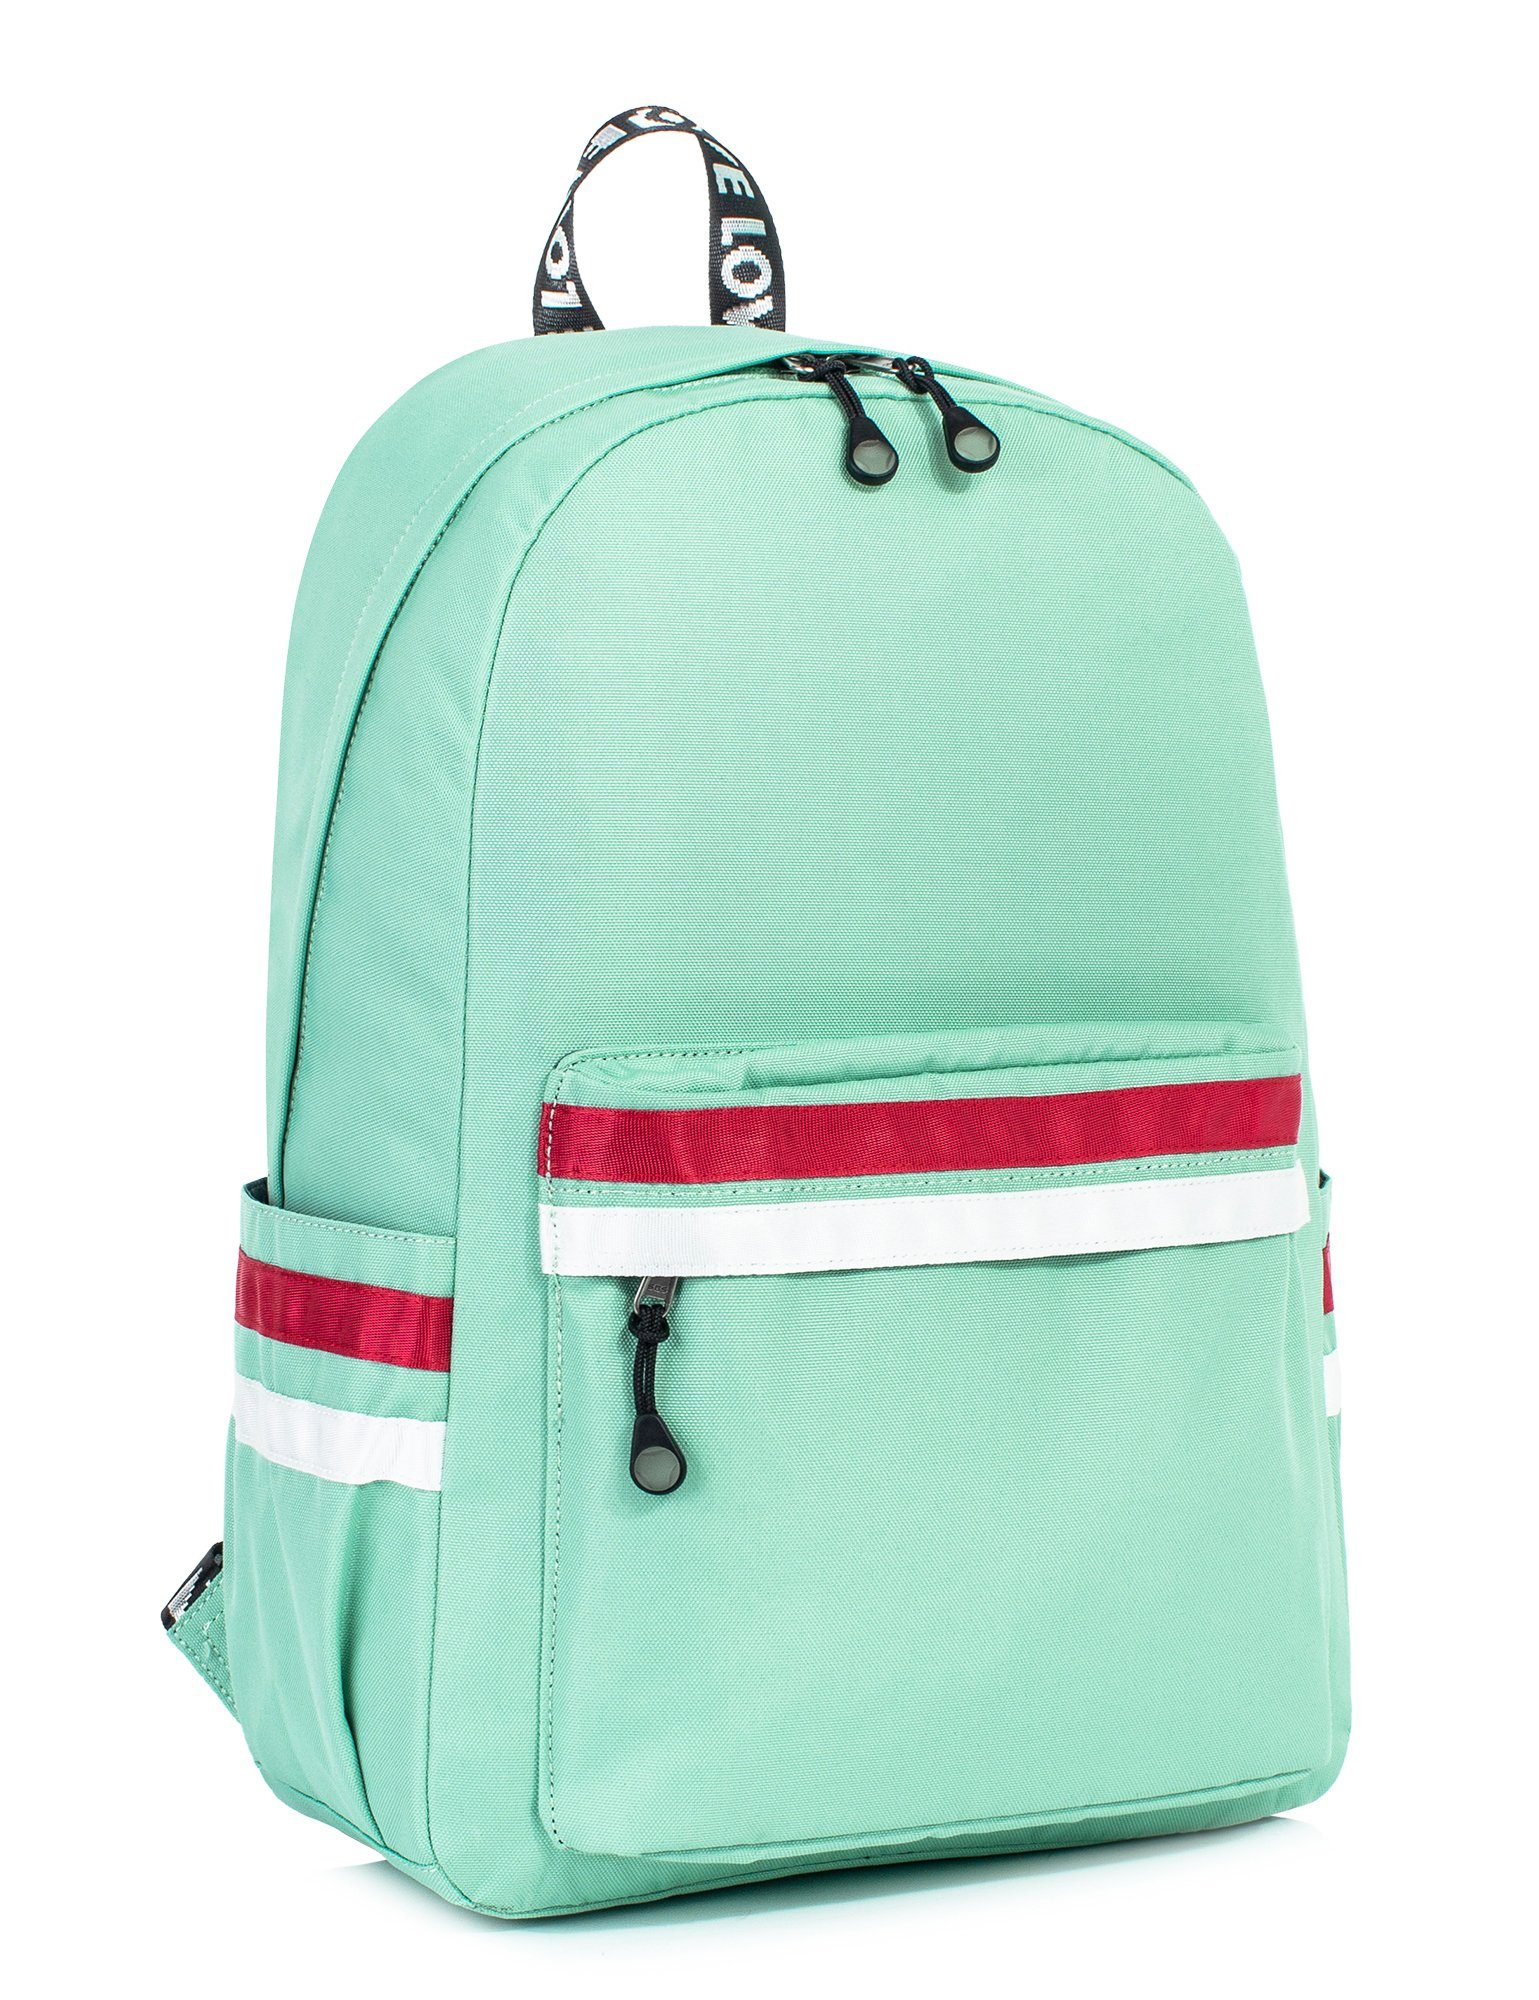 Leaper Water-resistant Laptop Backpack Travel Bag Girls Daypack 15.6-Inch (Water Blue [8110])